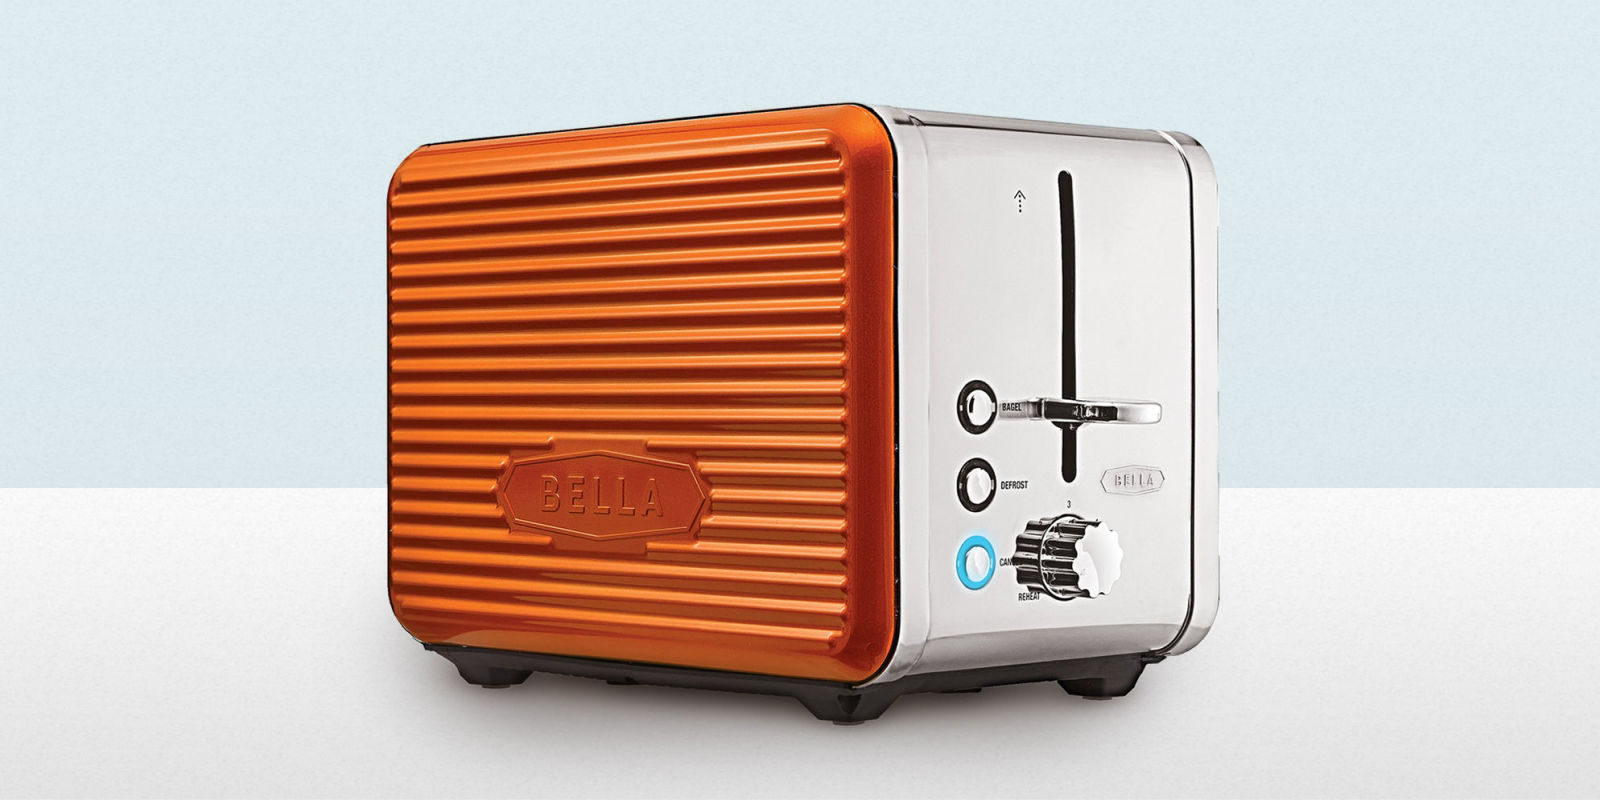 2016 S Best Toasters And Toaster Reviews Top 2 Amp 4 Slice